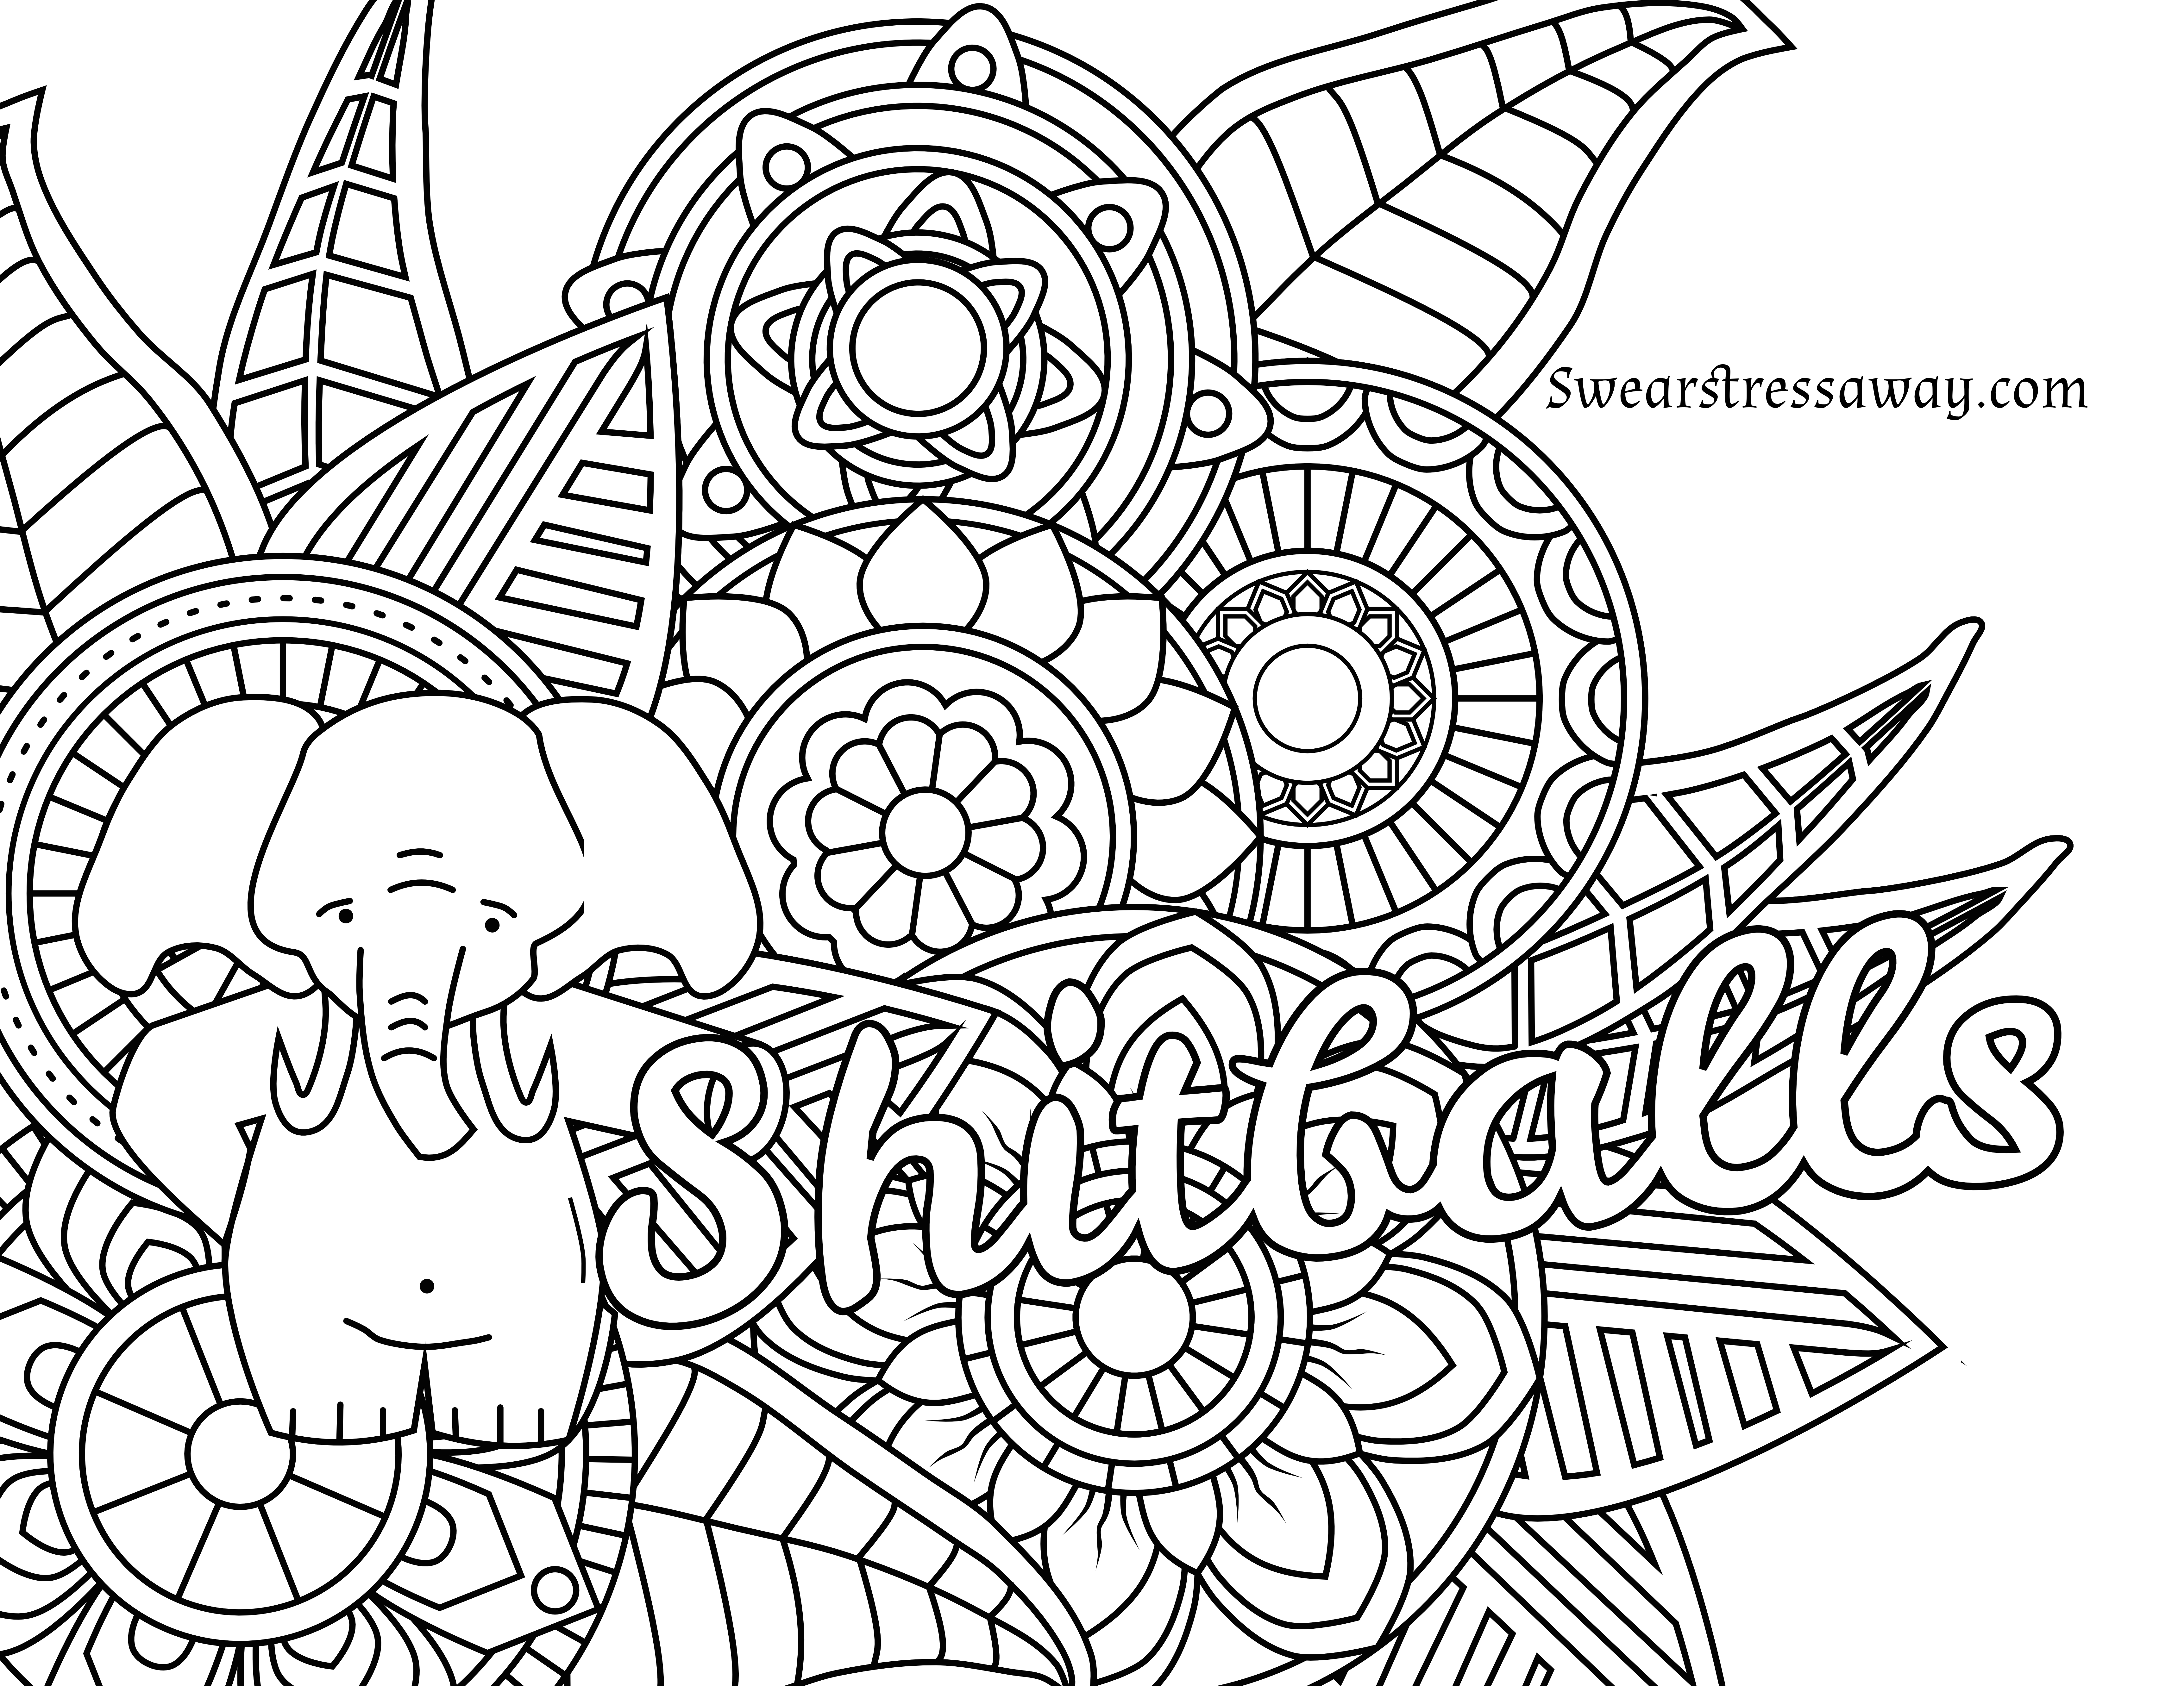 6900x5328 Luxury Idea Coloring Pages For Free You May Download These